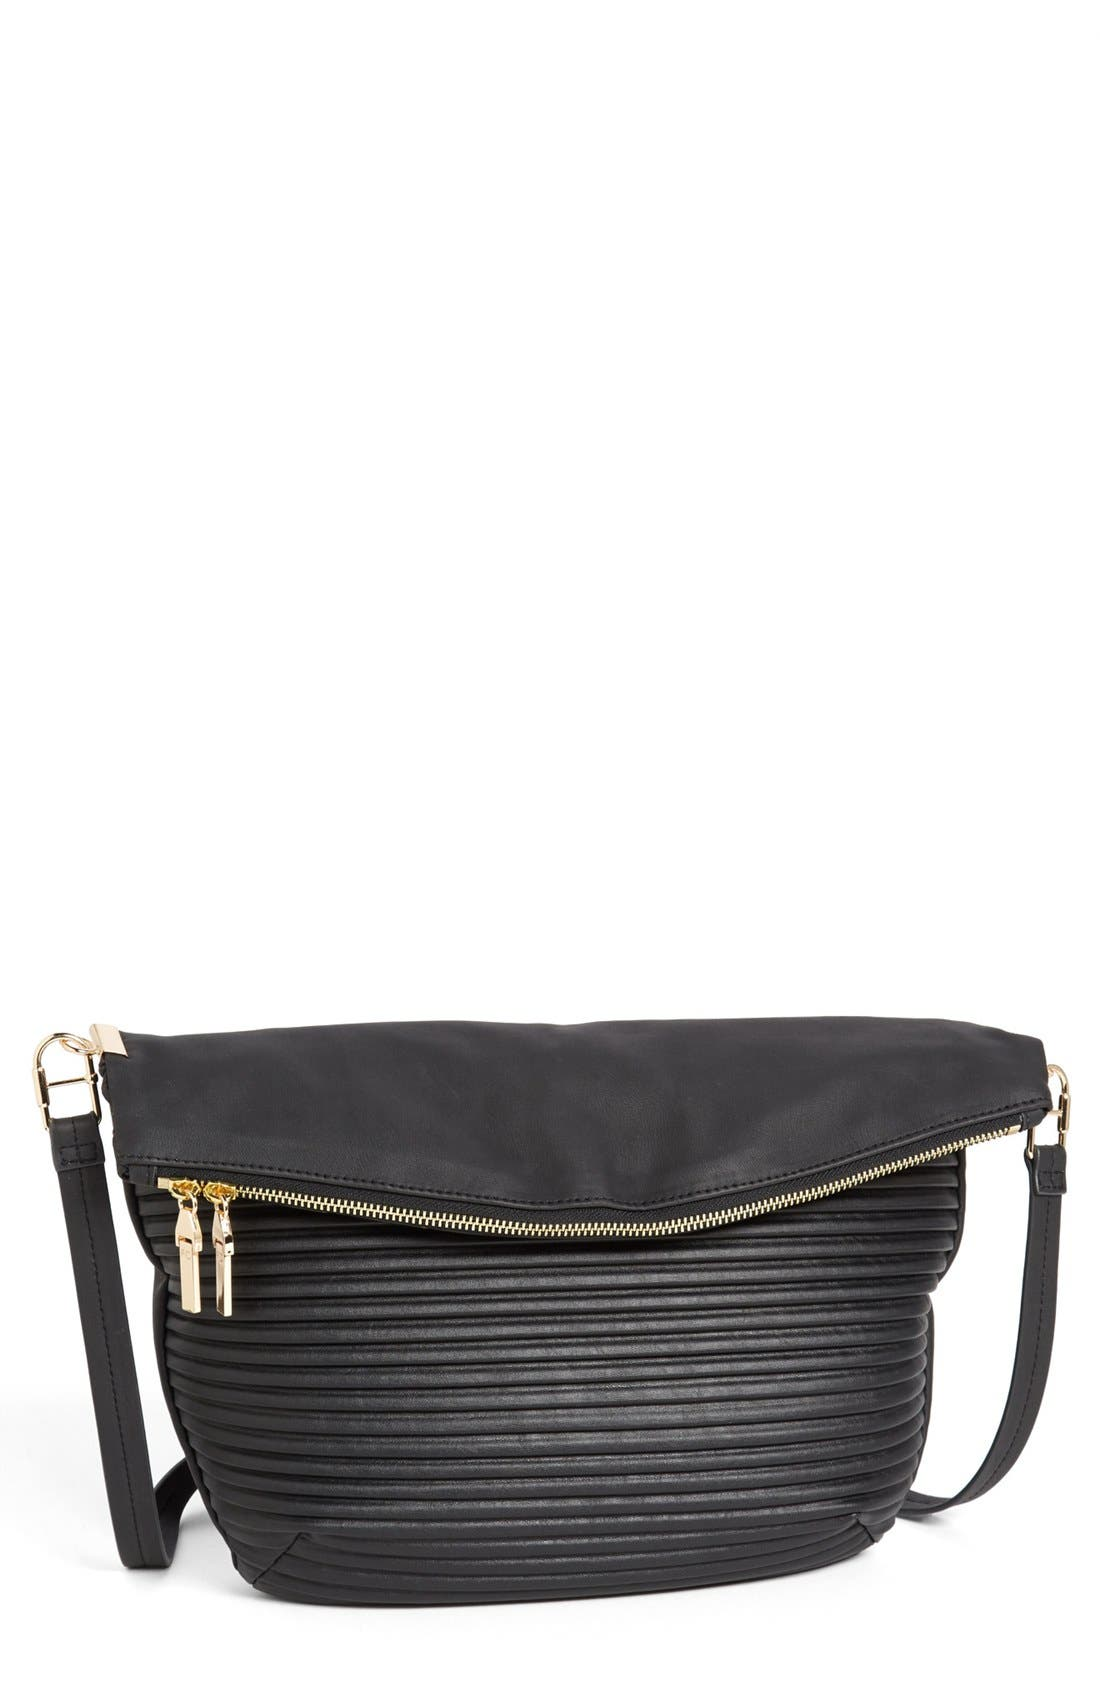 Alternate Image 1 Selected - French Connection Faux Leather Shoulder Bag